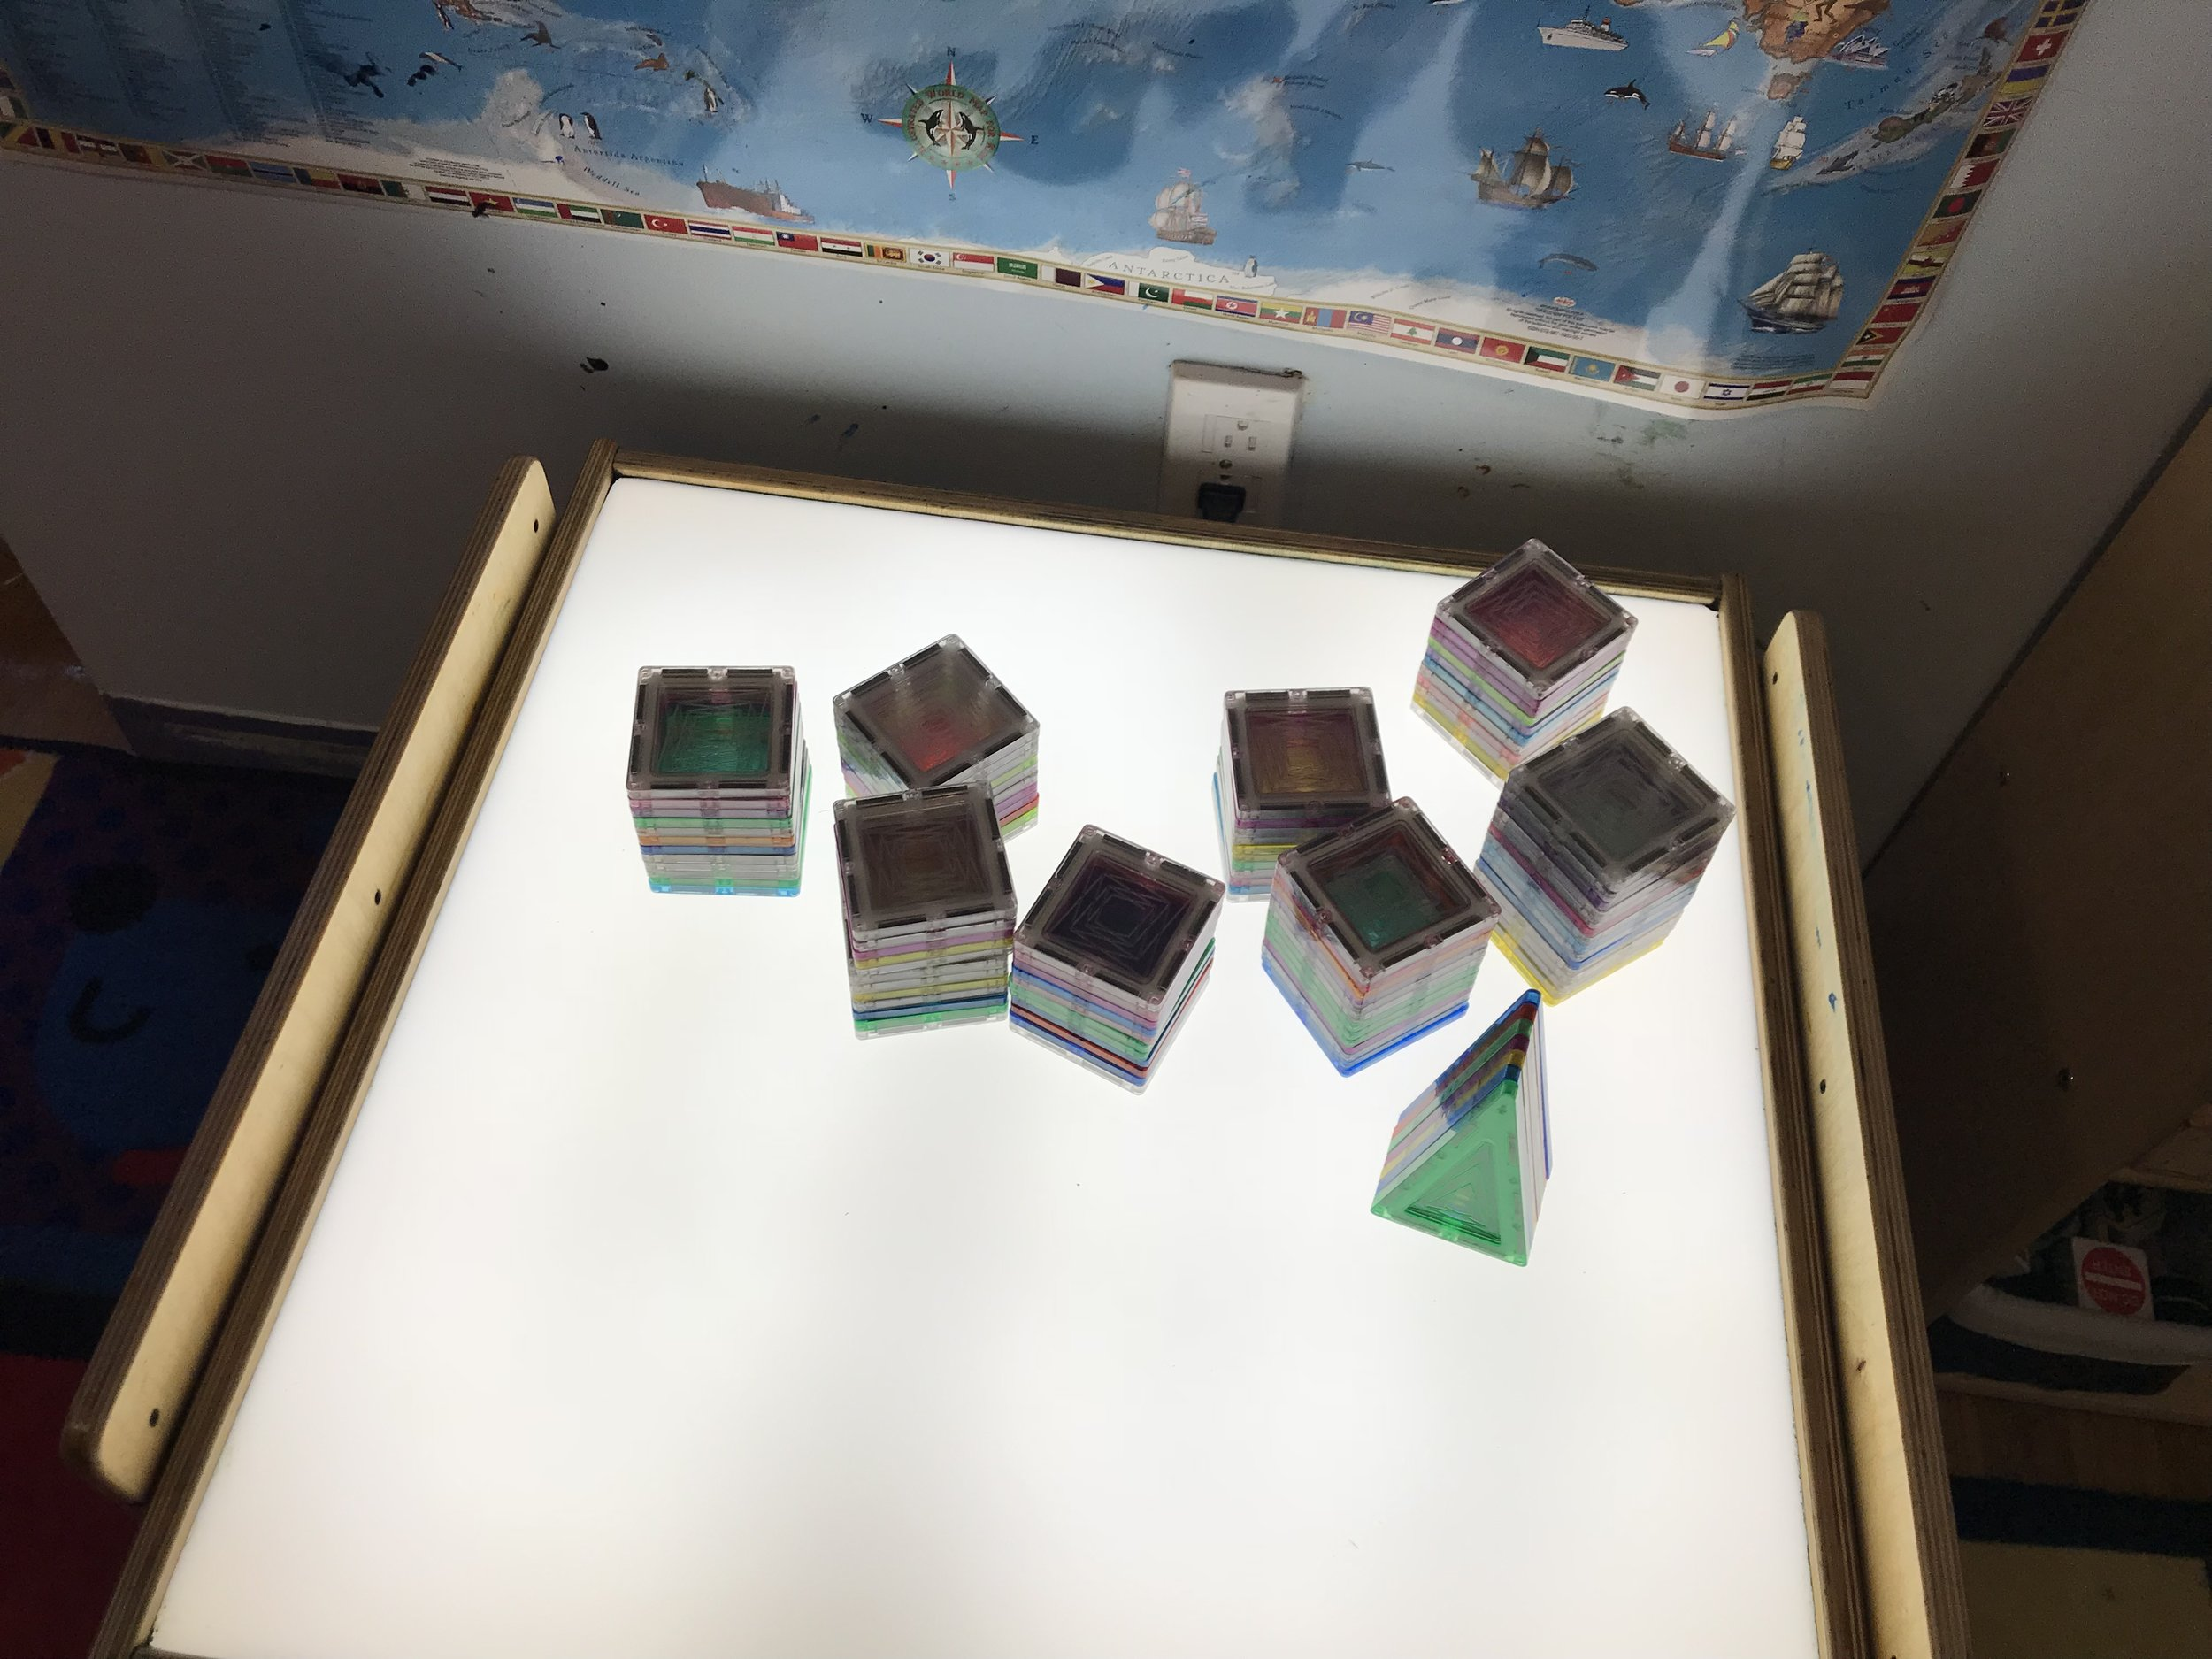 Reggio Inspired - Inviting children to build with magnet tiles on the light table to support children's interest in building